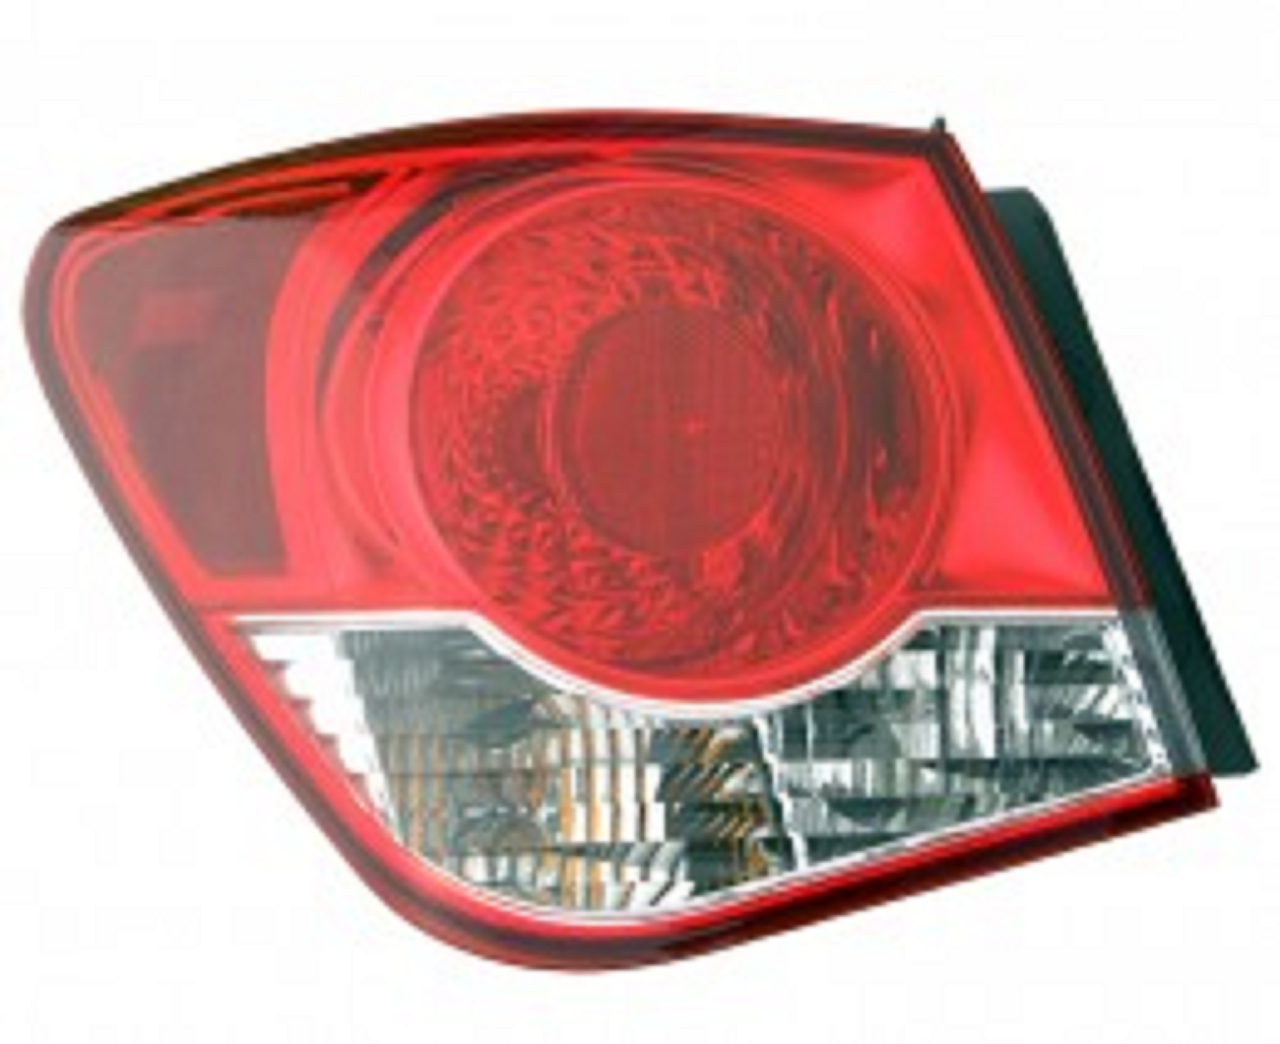 Chevrolet Cruze 2011 2012 2013 2014 2015 2016 tail light outer left driver